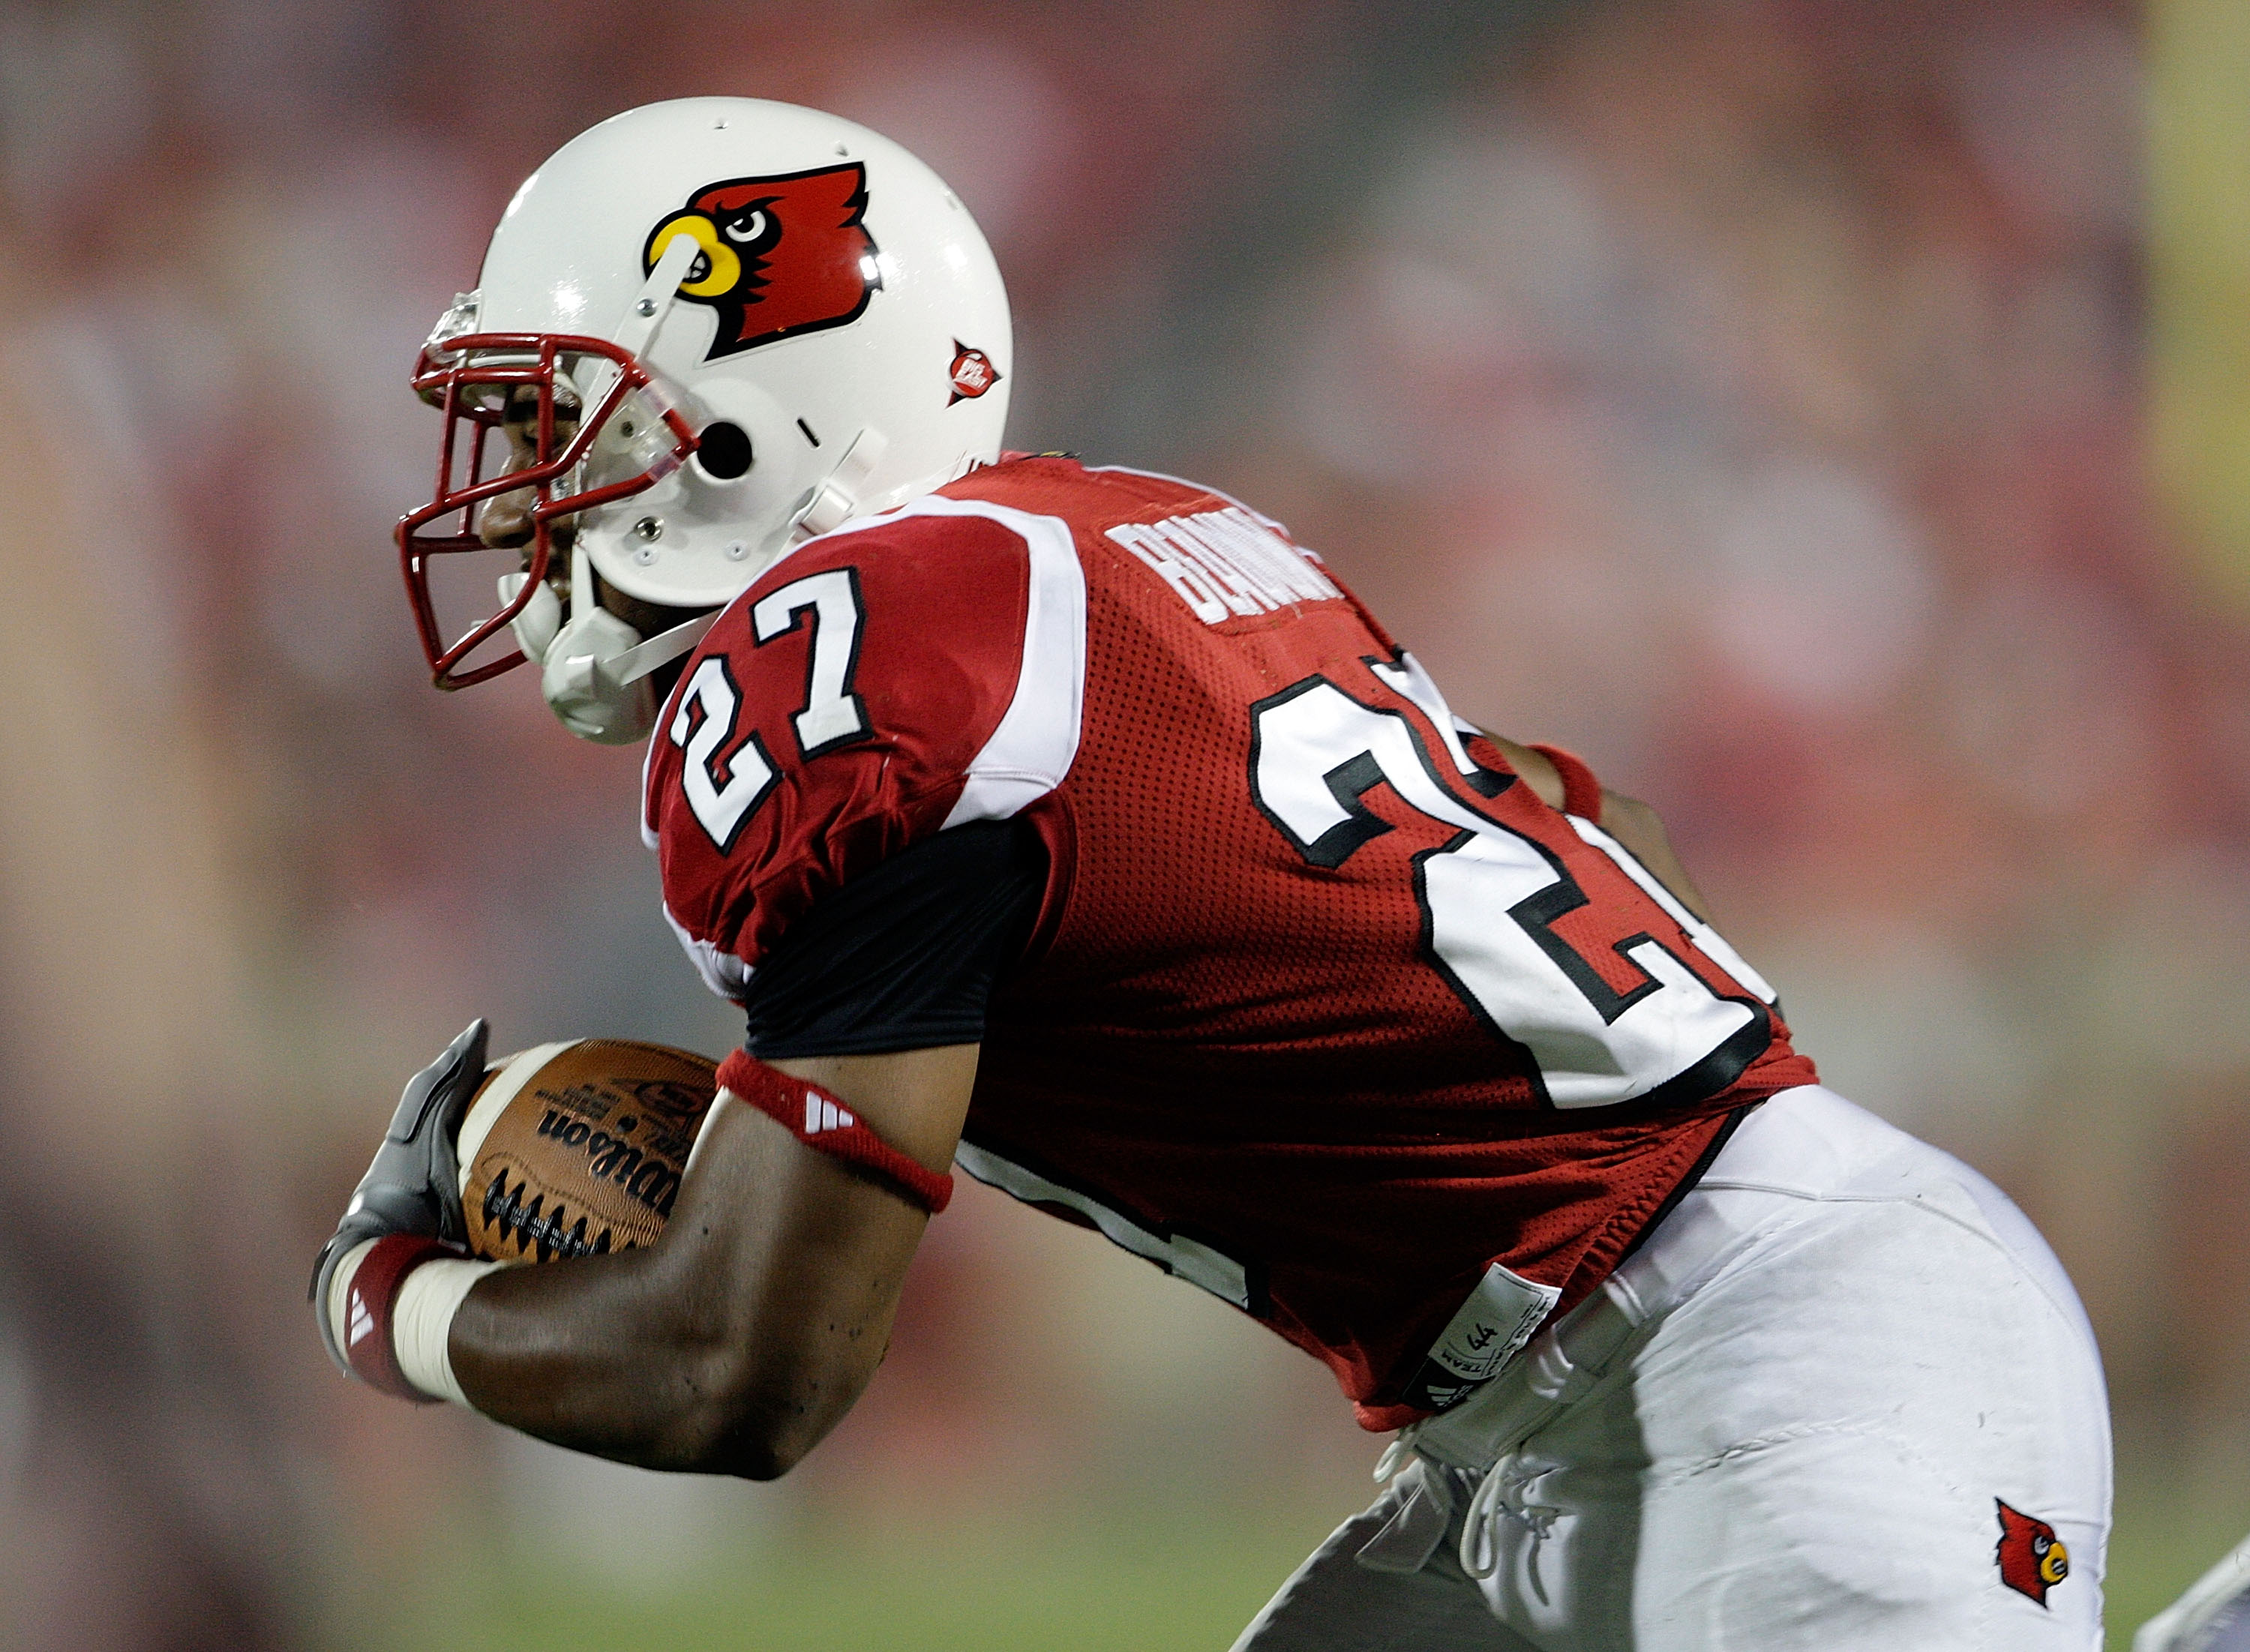 LOUISVILLE, KY - SEPTEMBER 05:  Doug Beaumont #27 of the Louisville Cardinals runs with the ball after a reception during the game against the Indiana State Sycamores at Papa John's Cardinal Stadium on September 5, 2009 in Louisville, Kentucky.  (Photo by